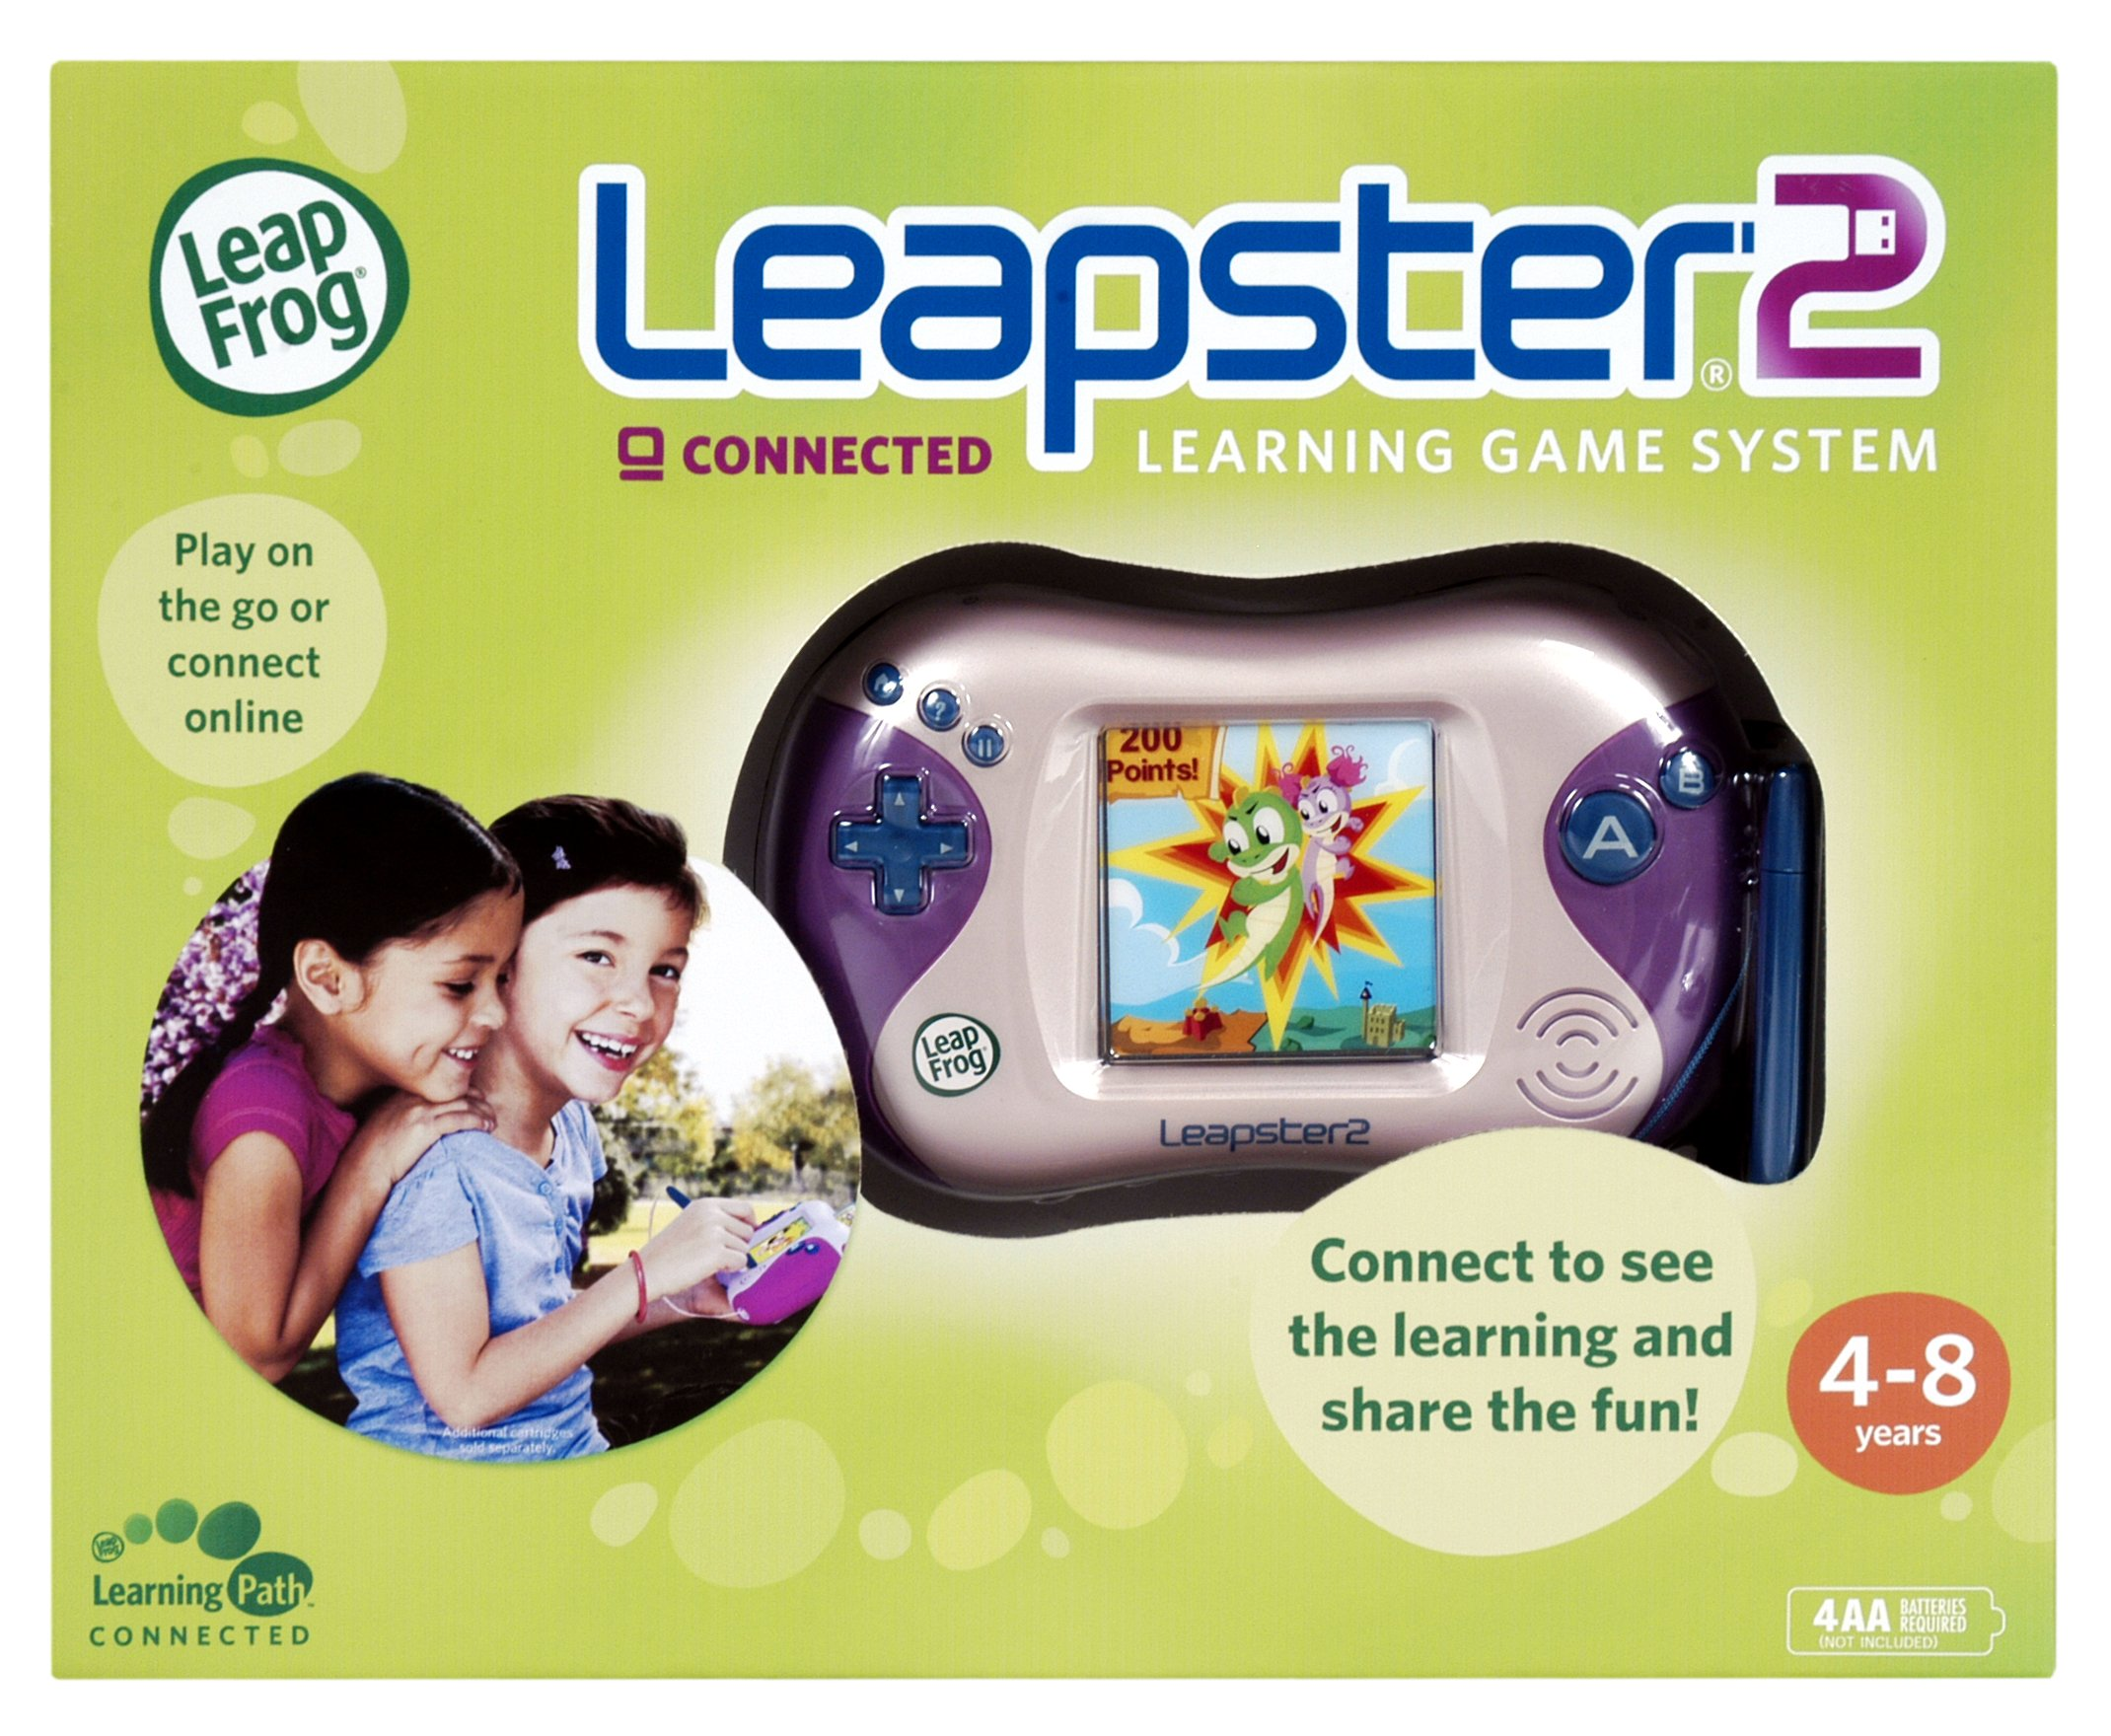 LeapFrog Leapster 2 Learning Game System - Pink by LeapFrog (Image #7)